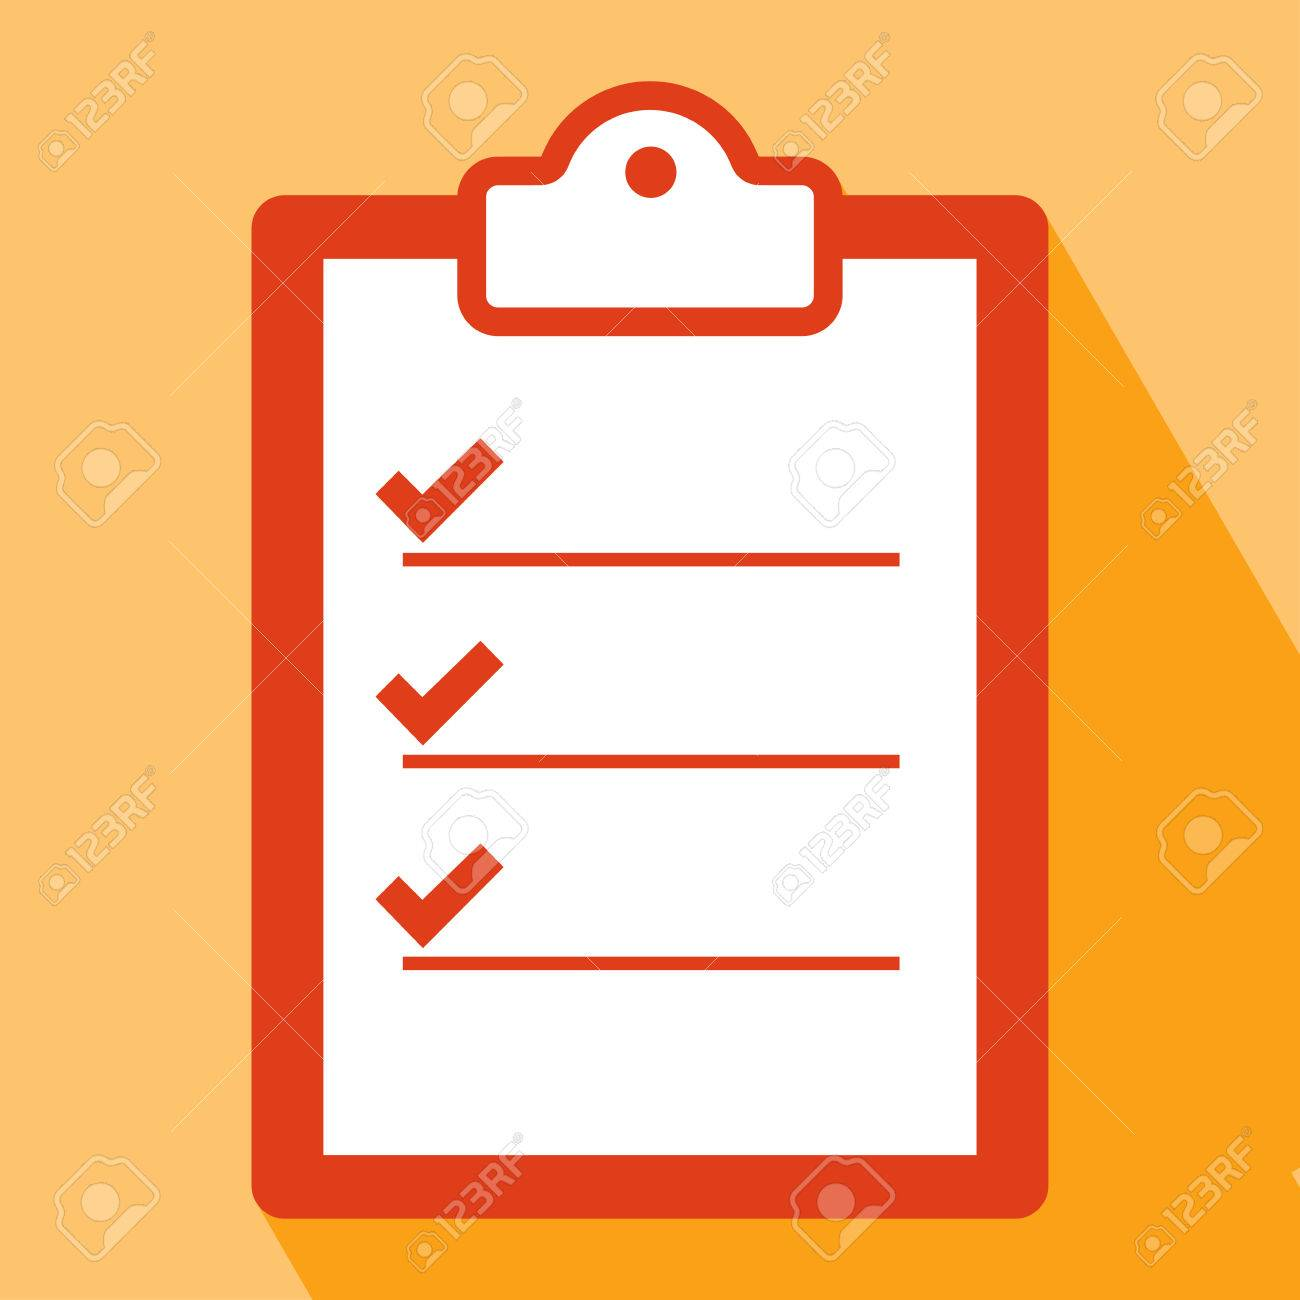 clipboard icon clipboard icon vector isolated on orange background rh 123rf com clipboard vector art clipboard vector free download